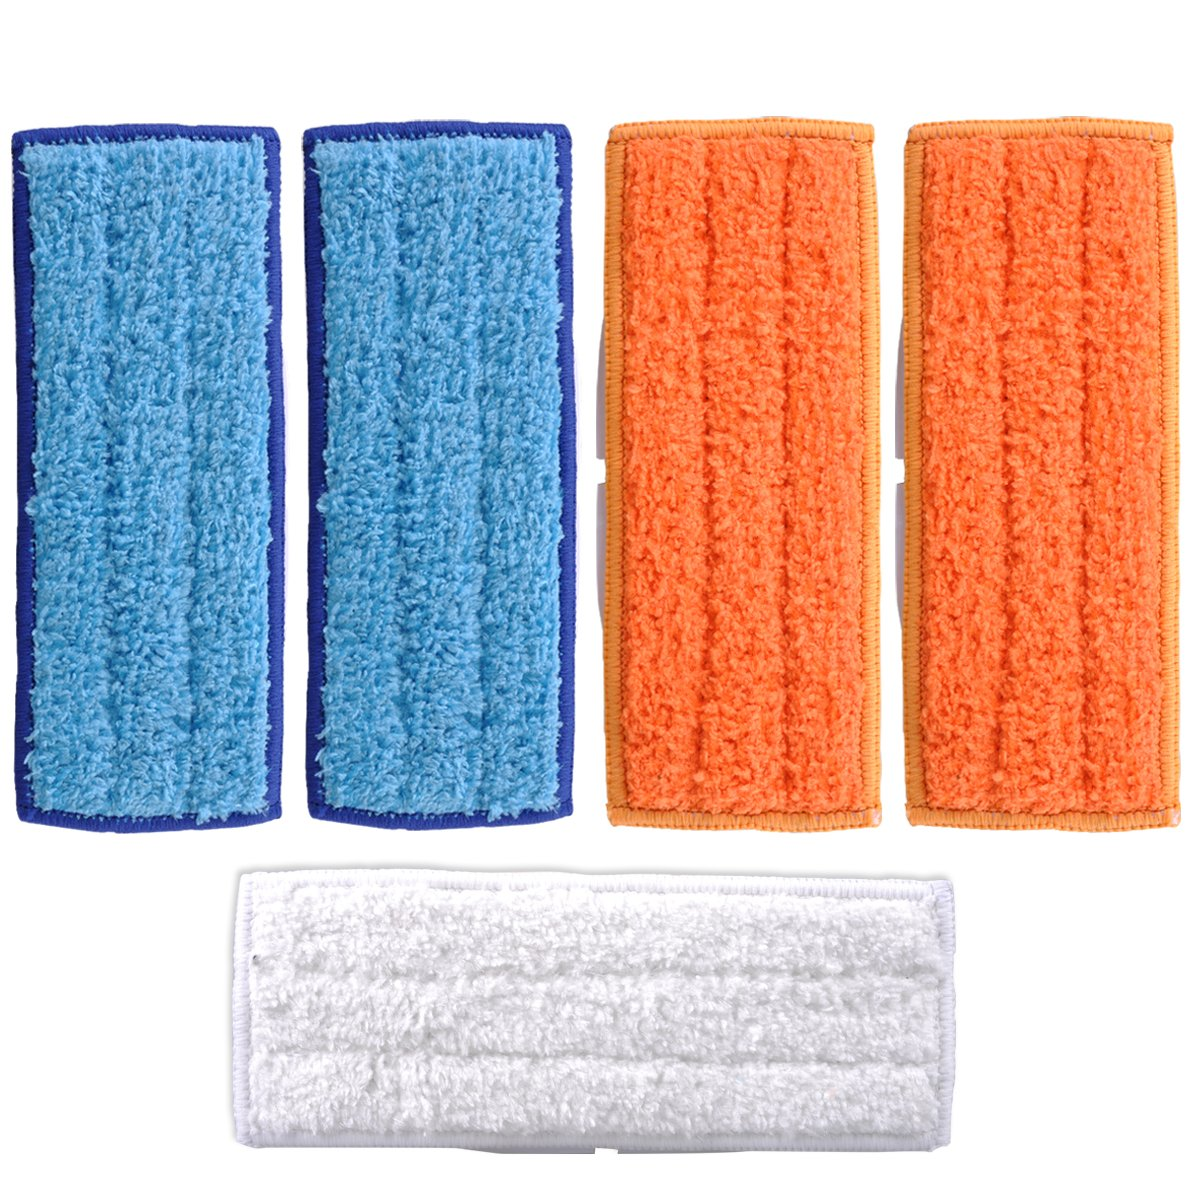 KEEPOW 5 Packs Washable Mopping Pads for iRobot Braava Jet 240 241 Included (2 pcs Wet Pads, 2 pcs Damp Pads and 1pcs Dry Pad) SYNCHKG108378